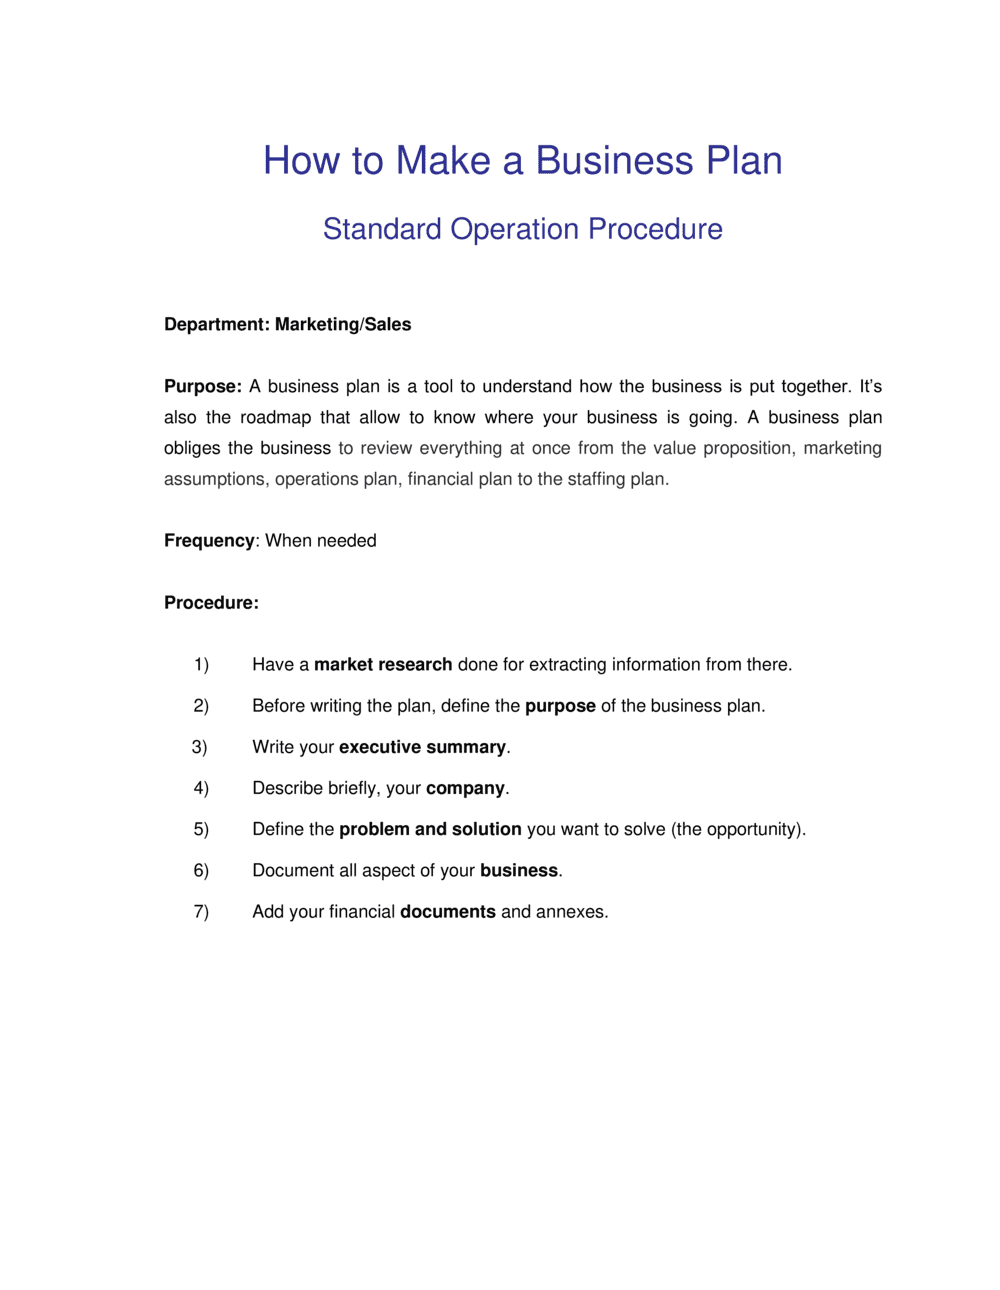 Business-in-a-Box's How to Make a Business Plan